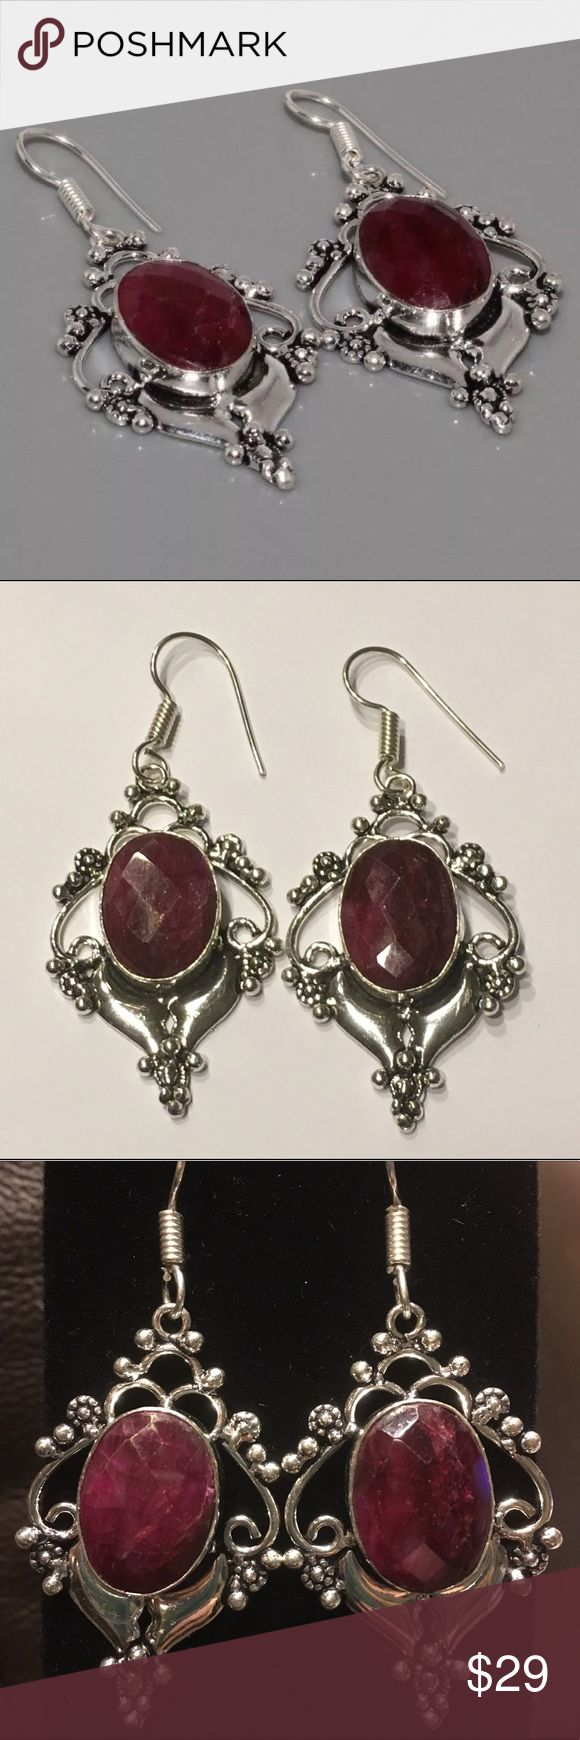 Faceted Natural Ruby Gemstone & Silver Earrings Faceted natural Ruby gemstone and 925 silver earrings. 2.2 inches in length from top of hook. Boutique Jewelry Earrings